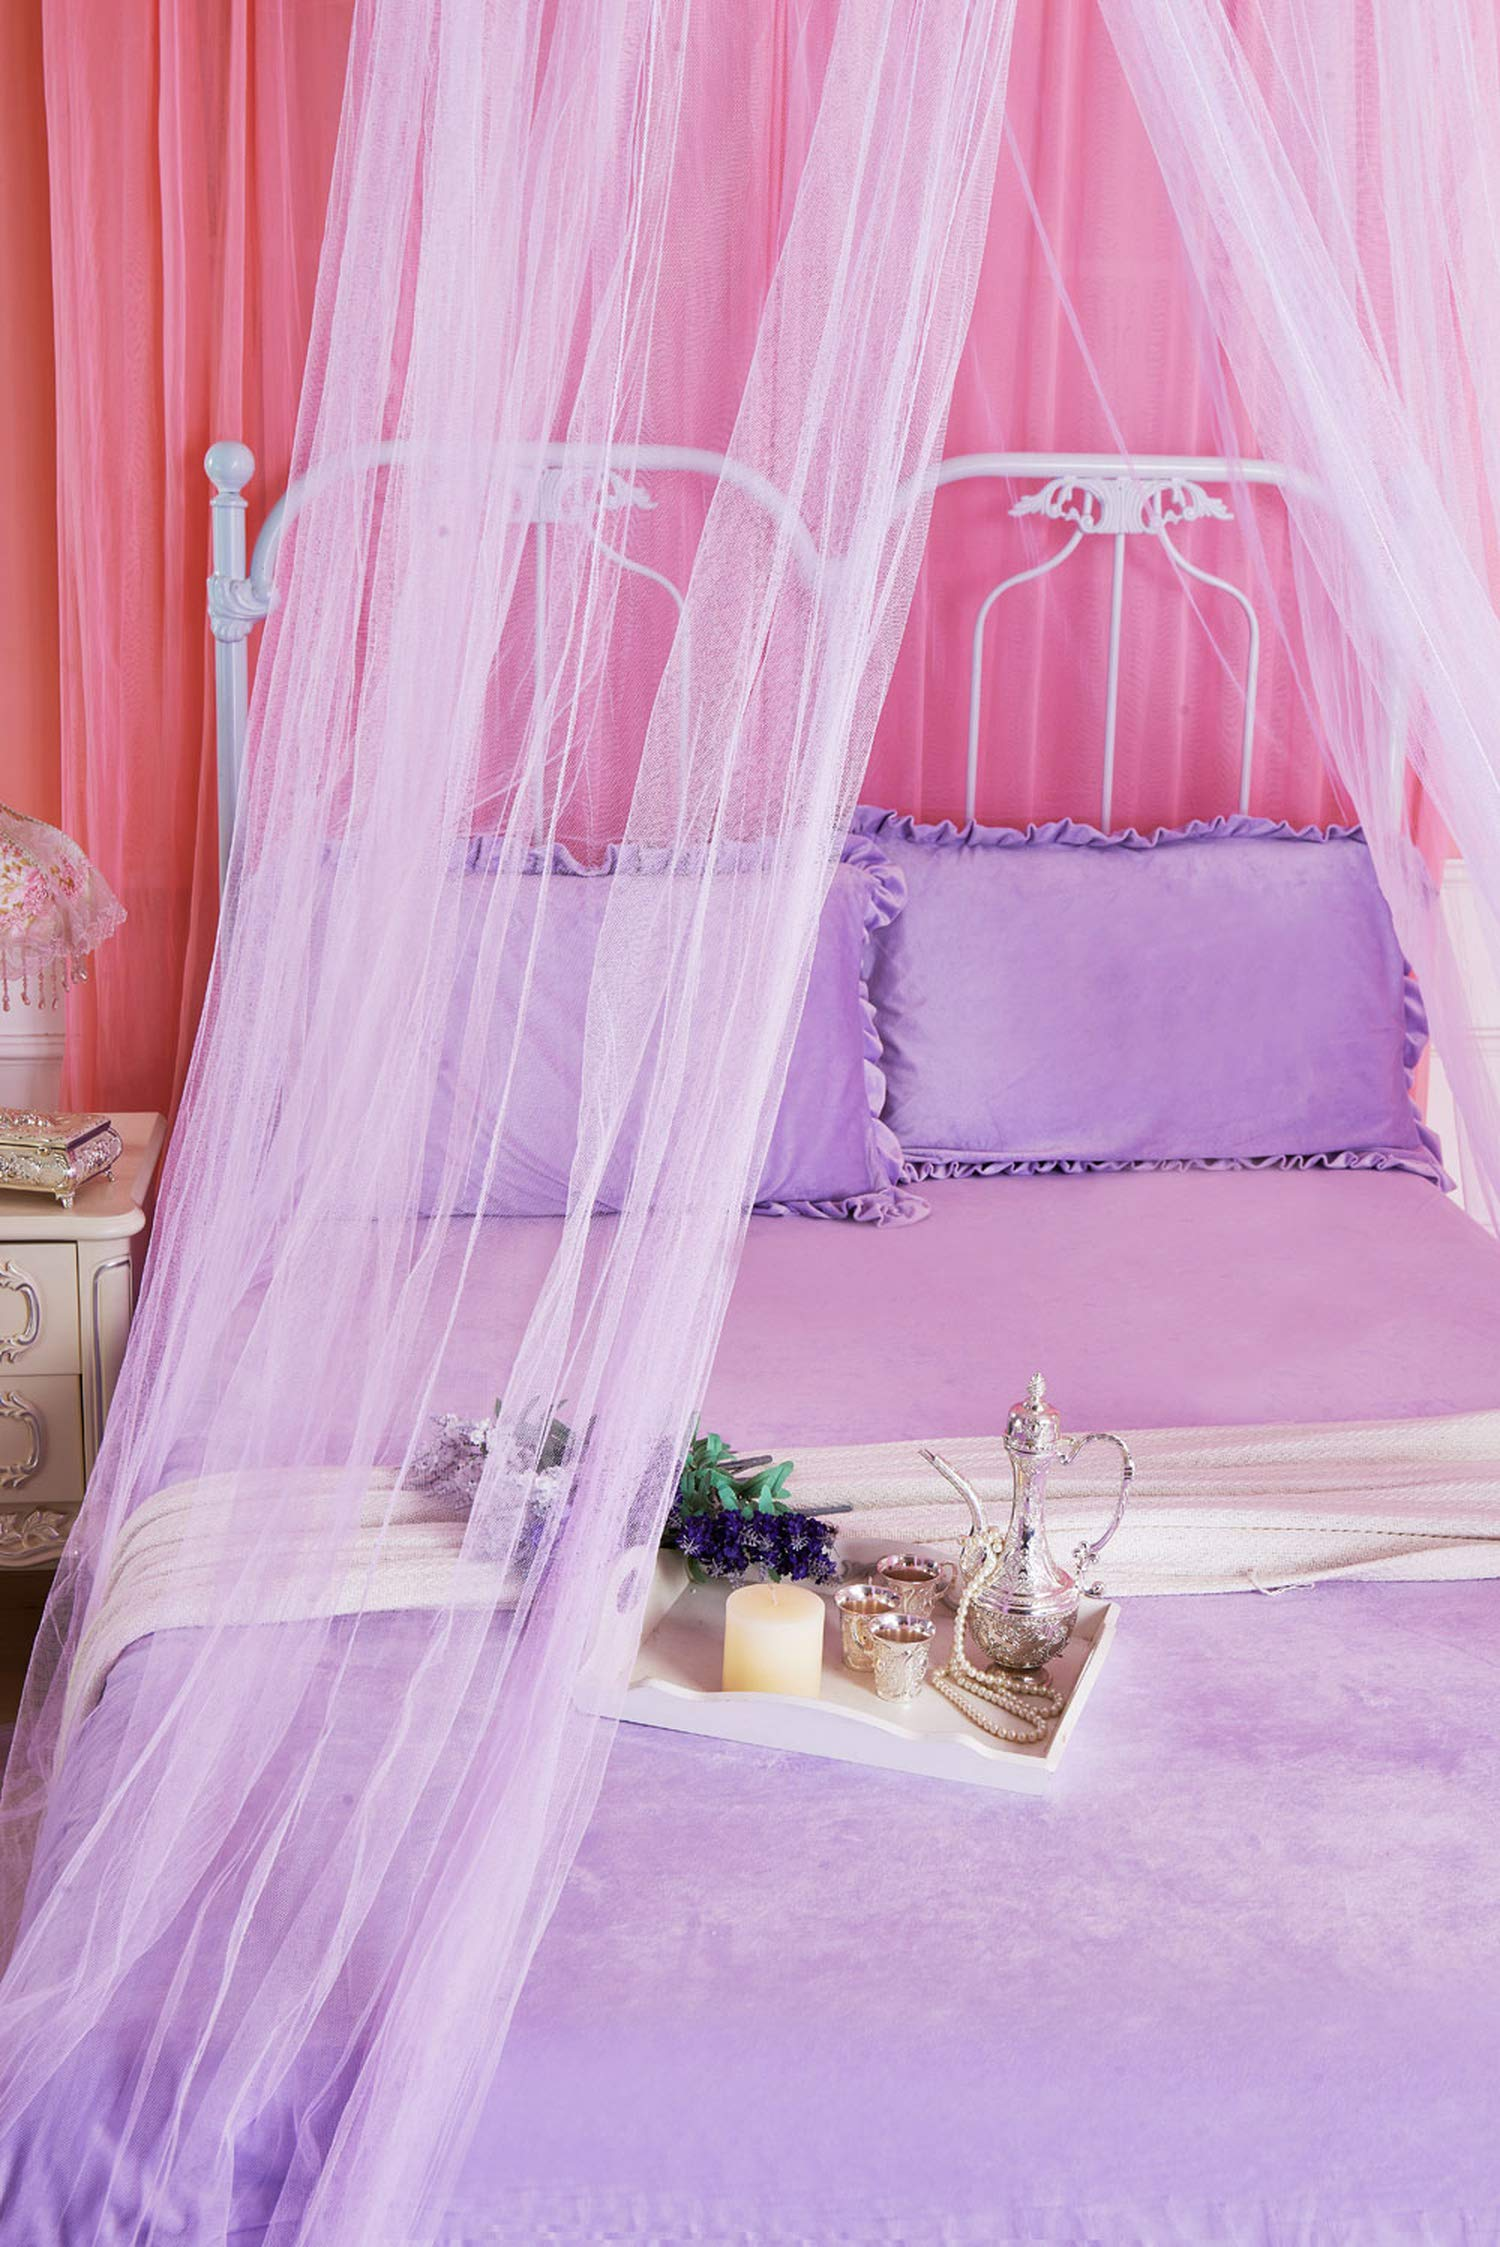 Portable Mosquito Net for Bed Canopy Round Canopy Netting Mesh Lace Curtain Bed Tent Anti Bug Insert Cibinlik Purple Nets,Pink,1.5m (5 feet) Bed by SuWuan mosquito net (Image #5)